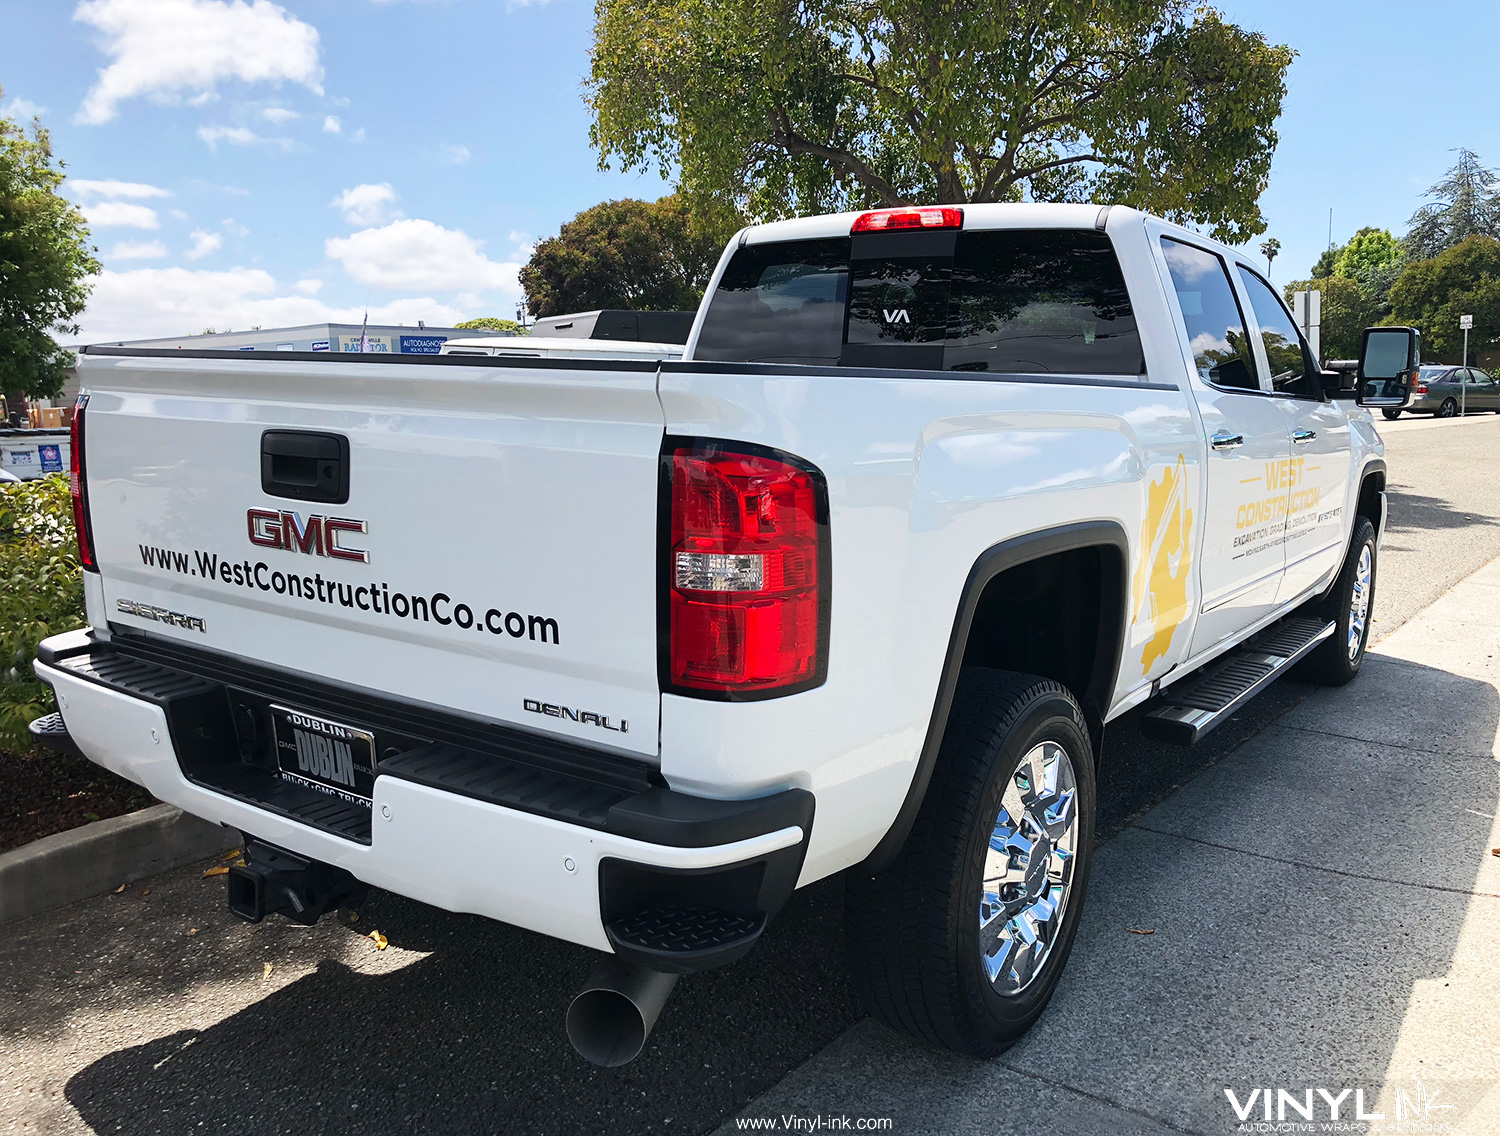 Graphic Decals and Cut Vinyl for West Construction GMC Truck